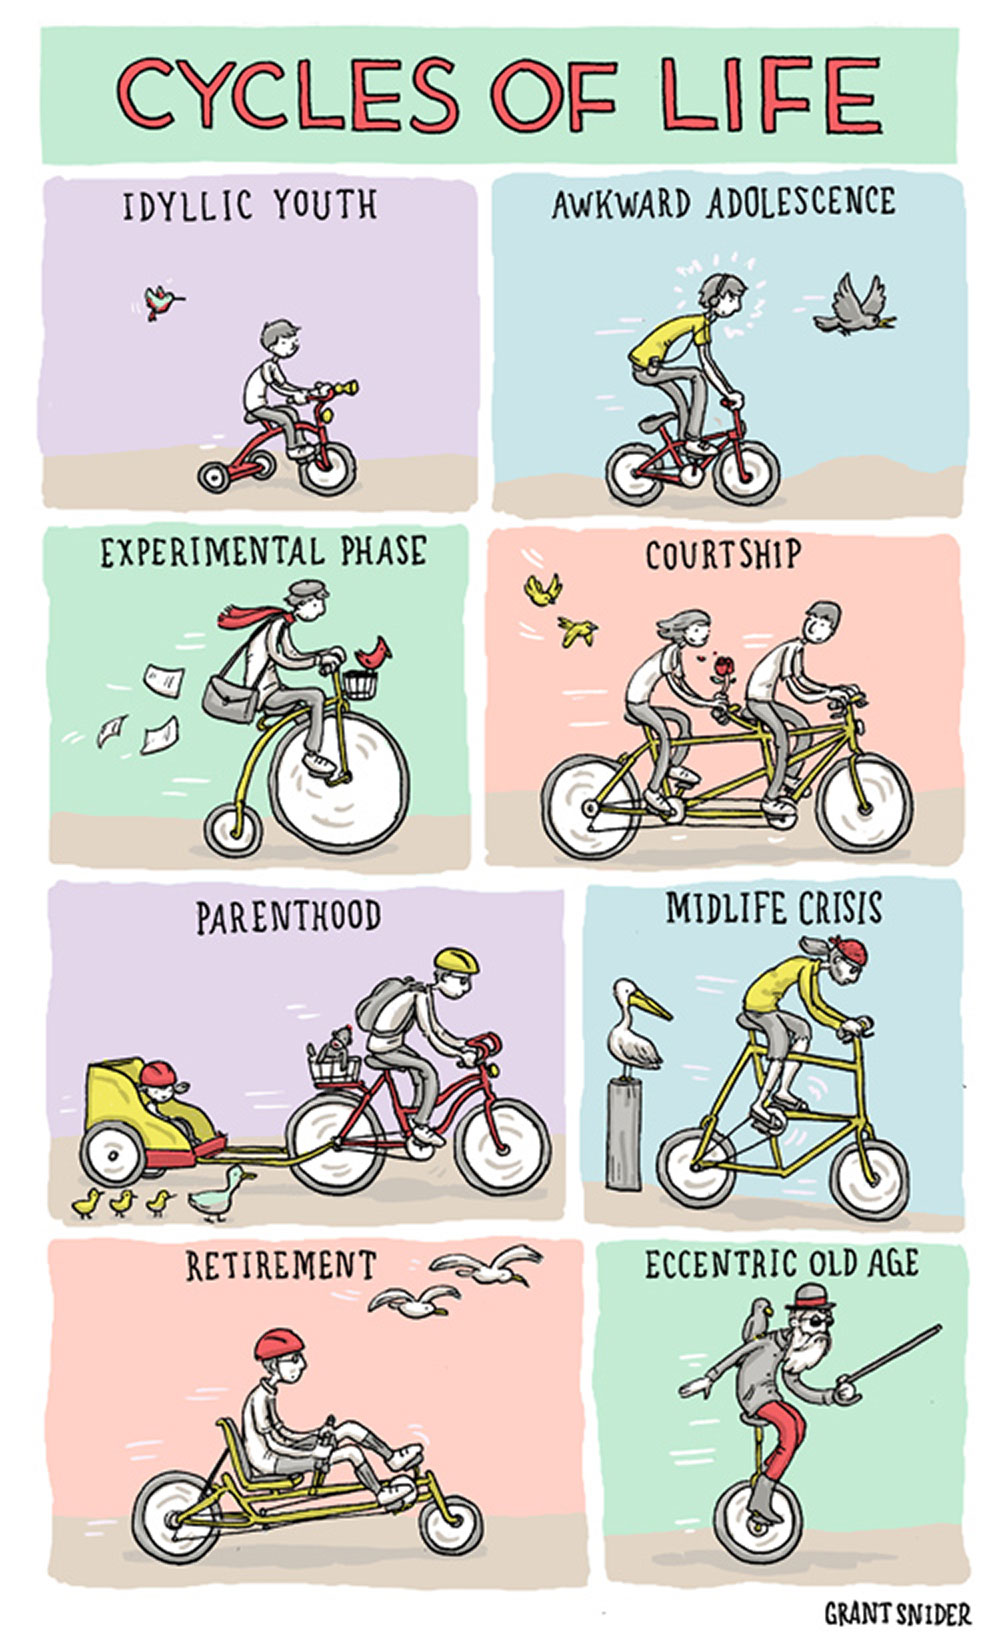 Cycle of life di Grant Snider